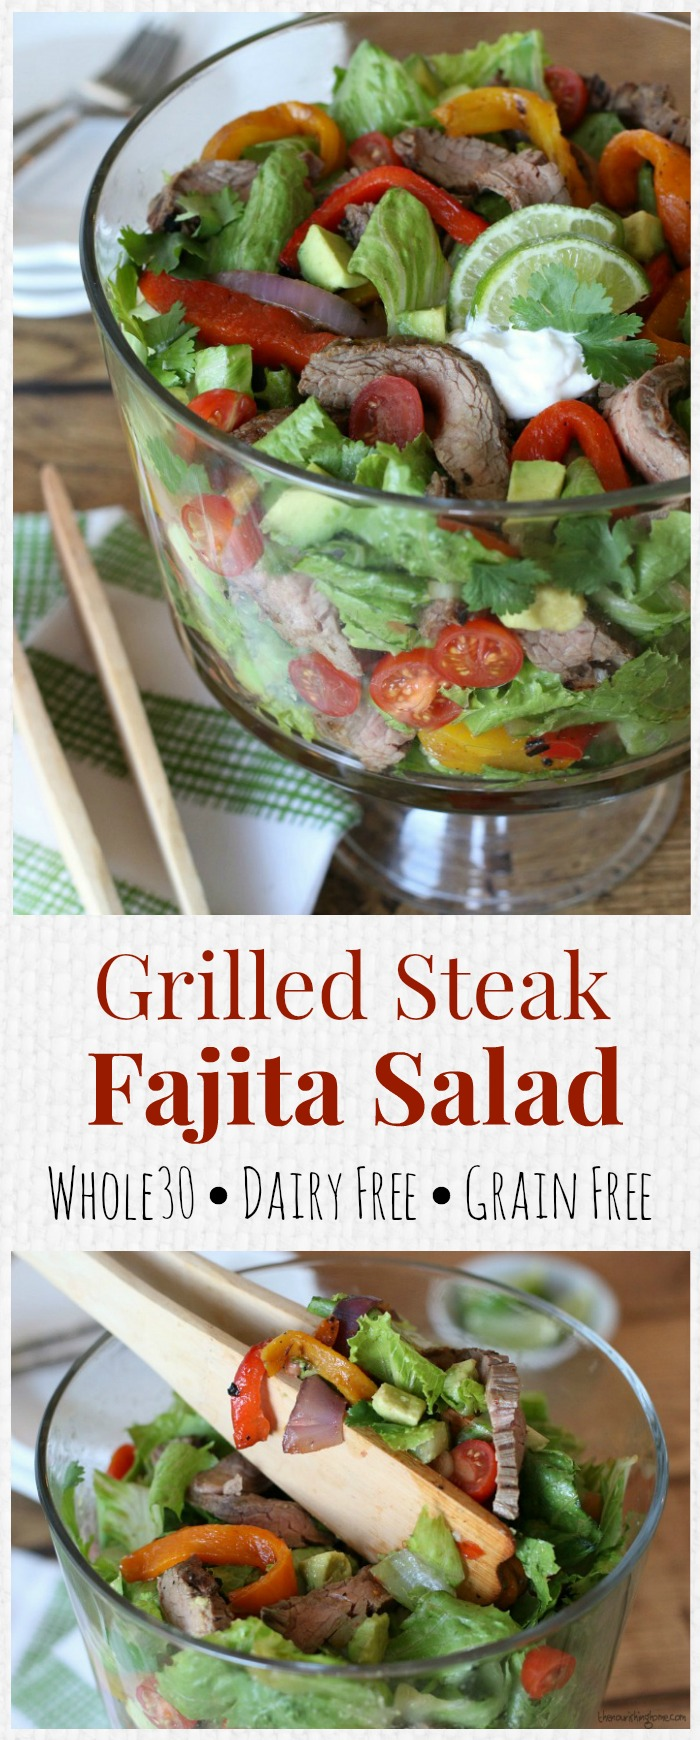 The bold and juicy flavors of perfectly seasoned steak nestled in a bed of grilled veggies makes this Grilled Fajita Salad over-the-top GOOD!